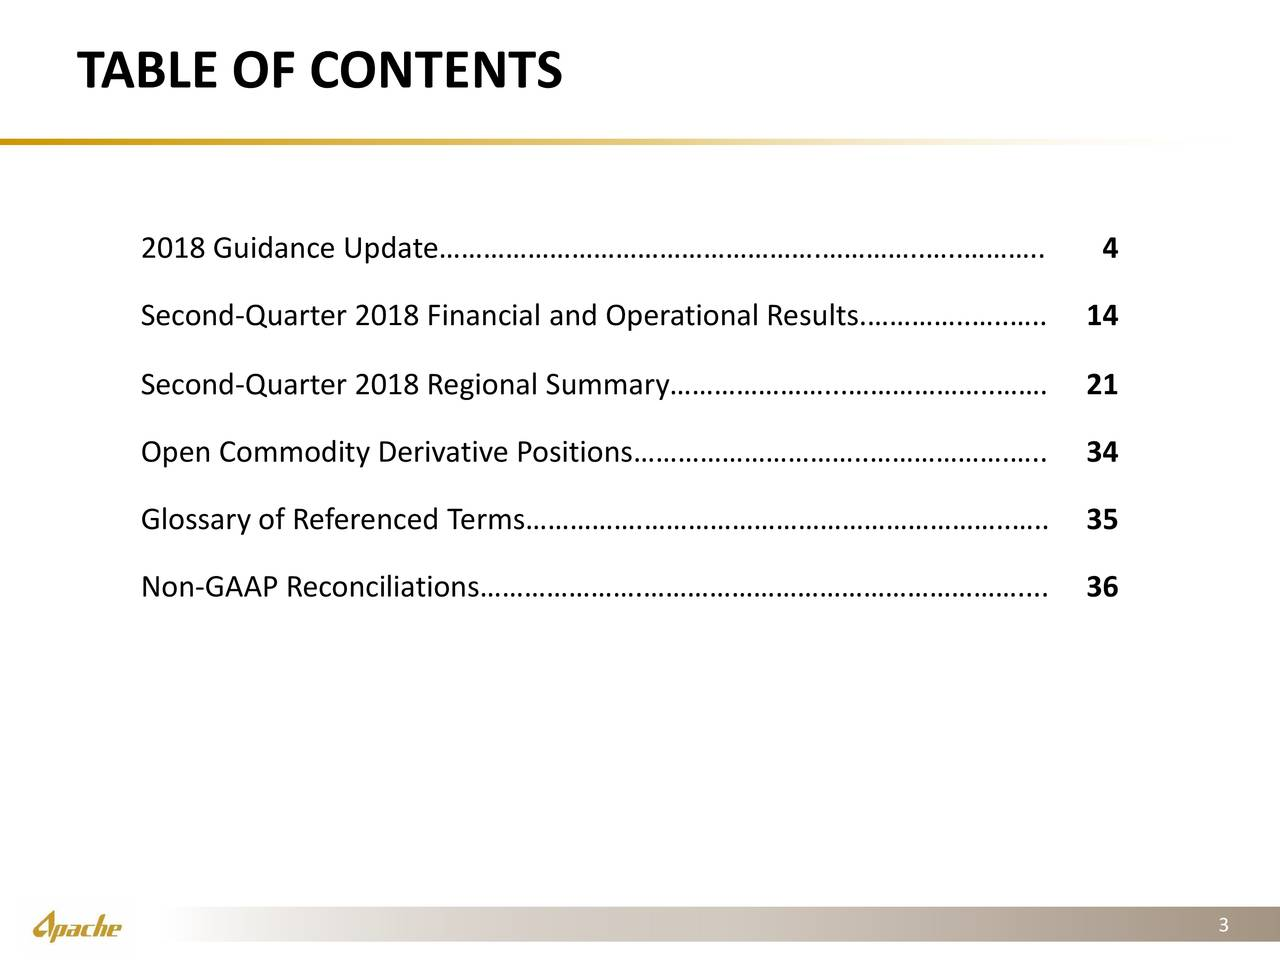 2018 Guidance Update…………………………………………….…………..…..……….. 4 Second-Quarter 2018 Financial and Operational Results.………….14..….. Second-Quarter 2018 Regional Summary…………………...………………..……. 21 Open Commodity Derivative Positions…………………………..……………….….. 34 Glossary of Referenced Terms…………….…………………………………………..….. 35 Non-GAAP Reconciliations………………….…………………………………………….... 36 3